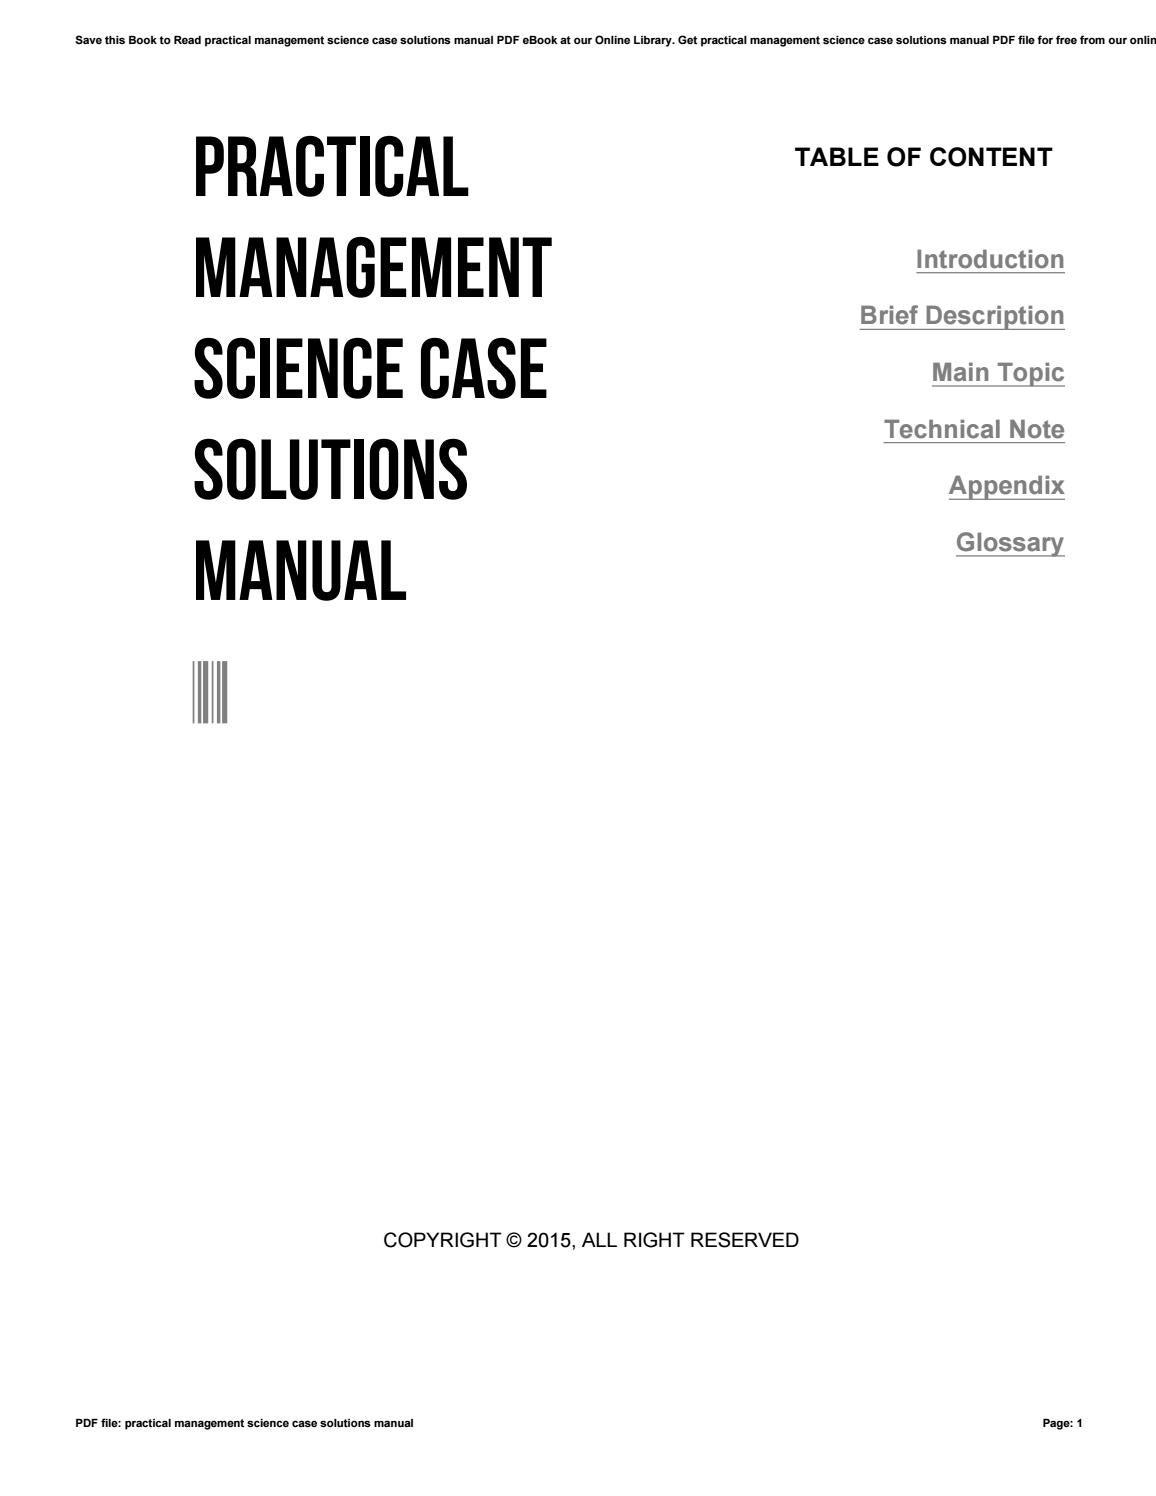 Practical management science case solutions manual by